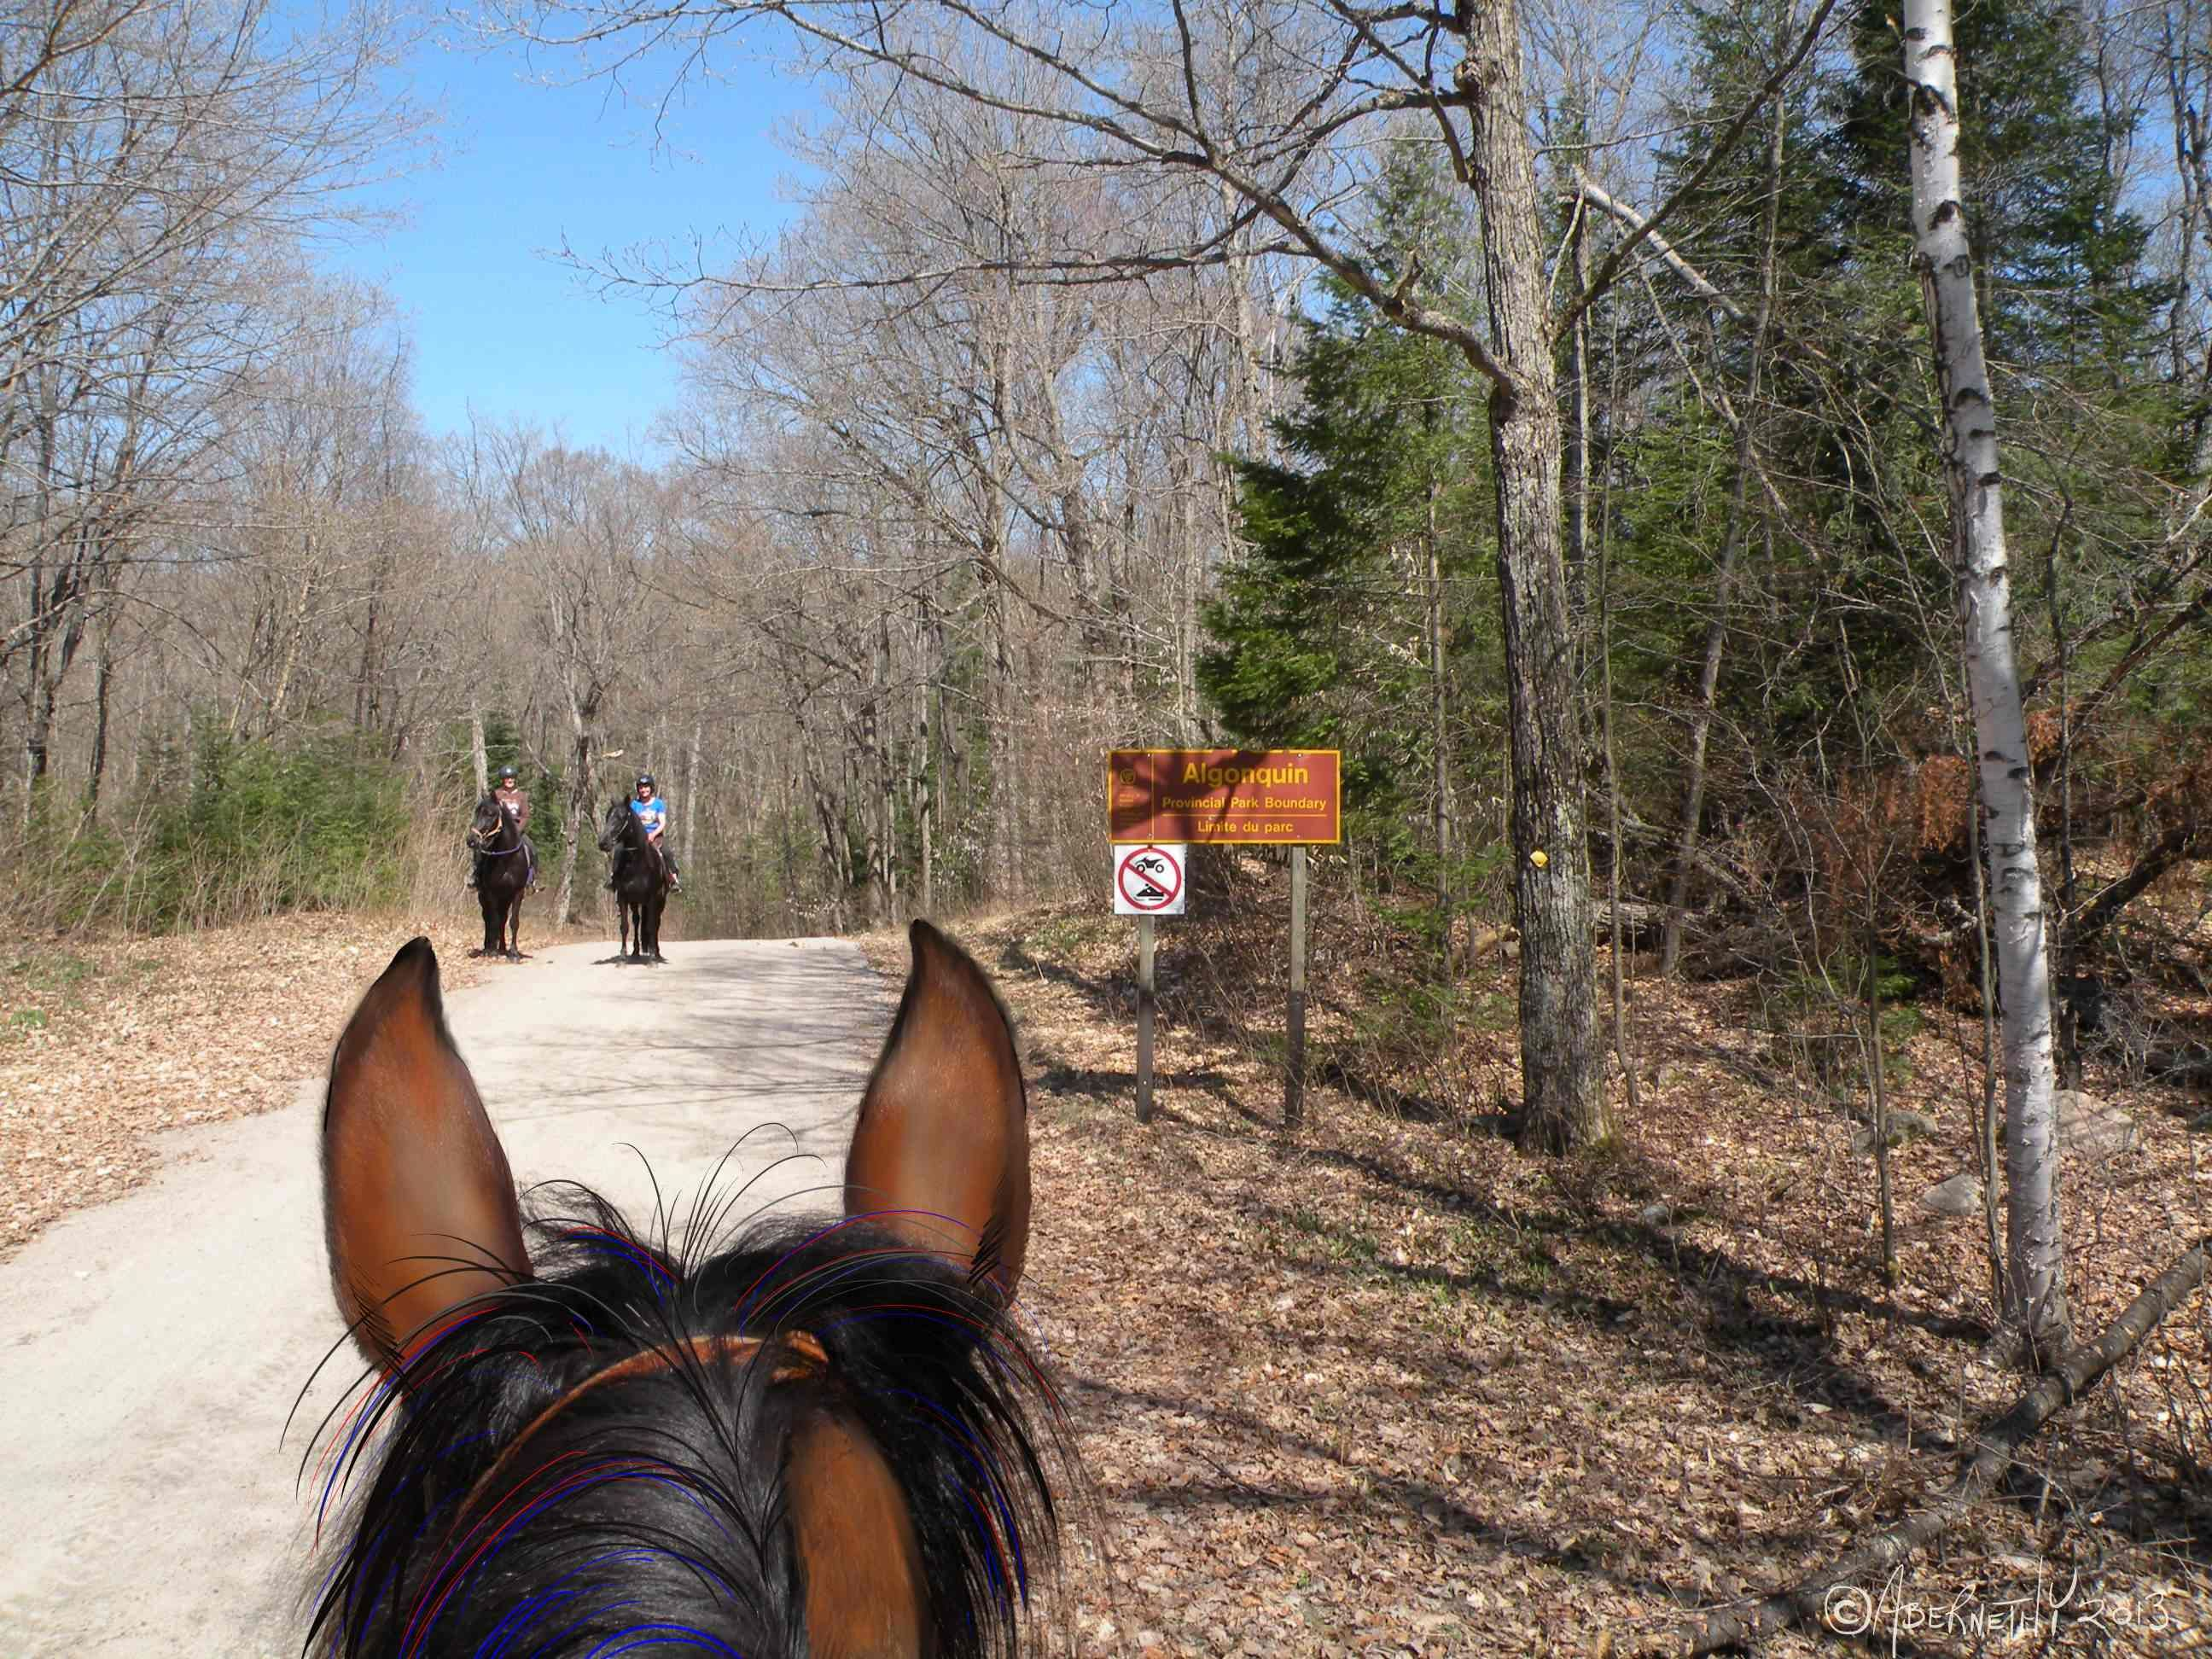 Algonquin Provincial Park is Canada's oldest Provincial park, established in 1893.  Horses used to work here hauling timber.  Now we explore the trails.